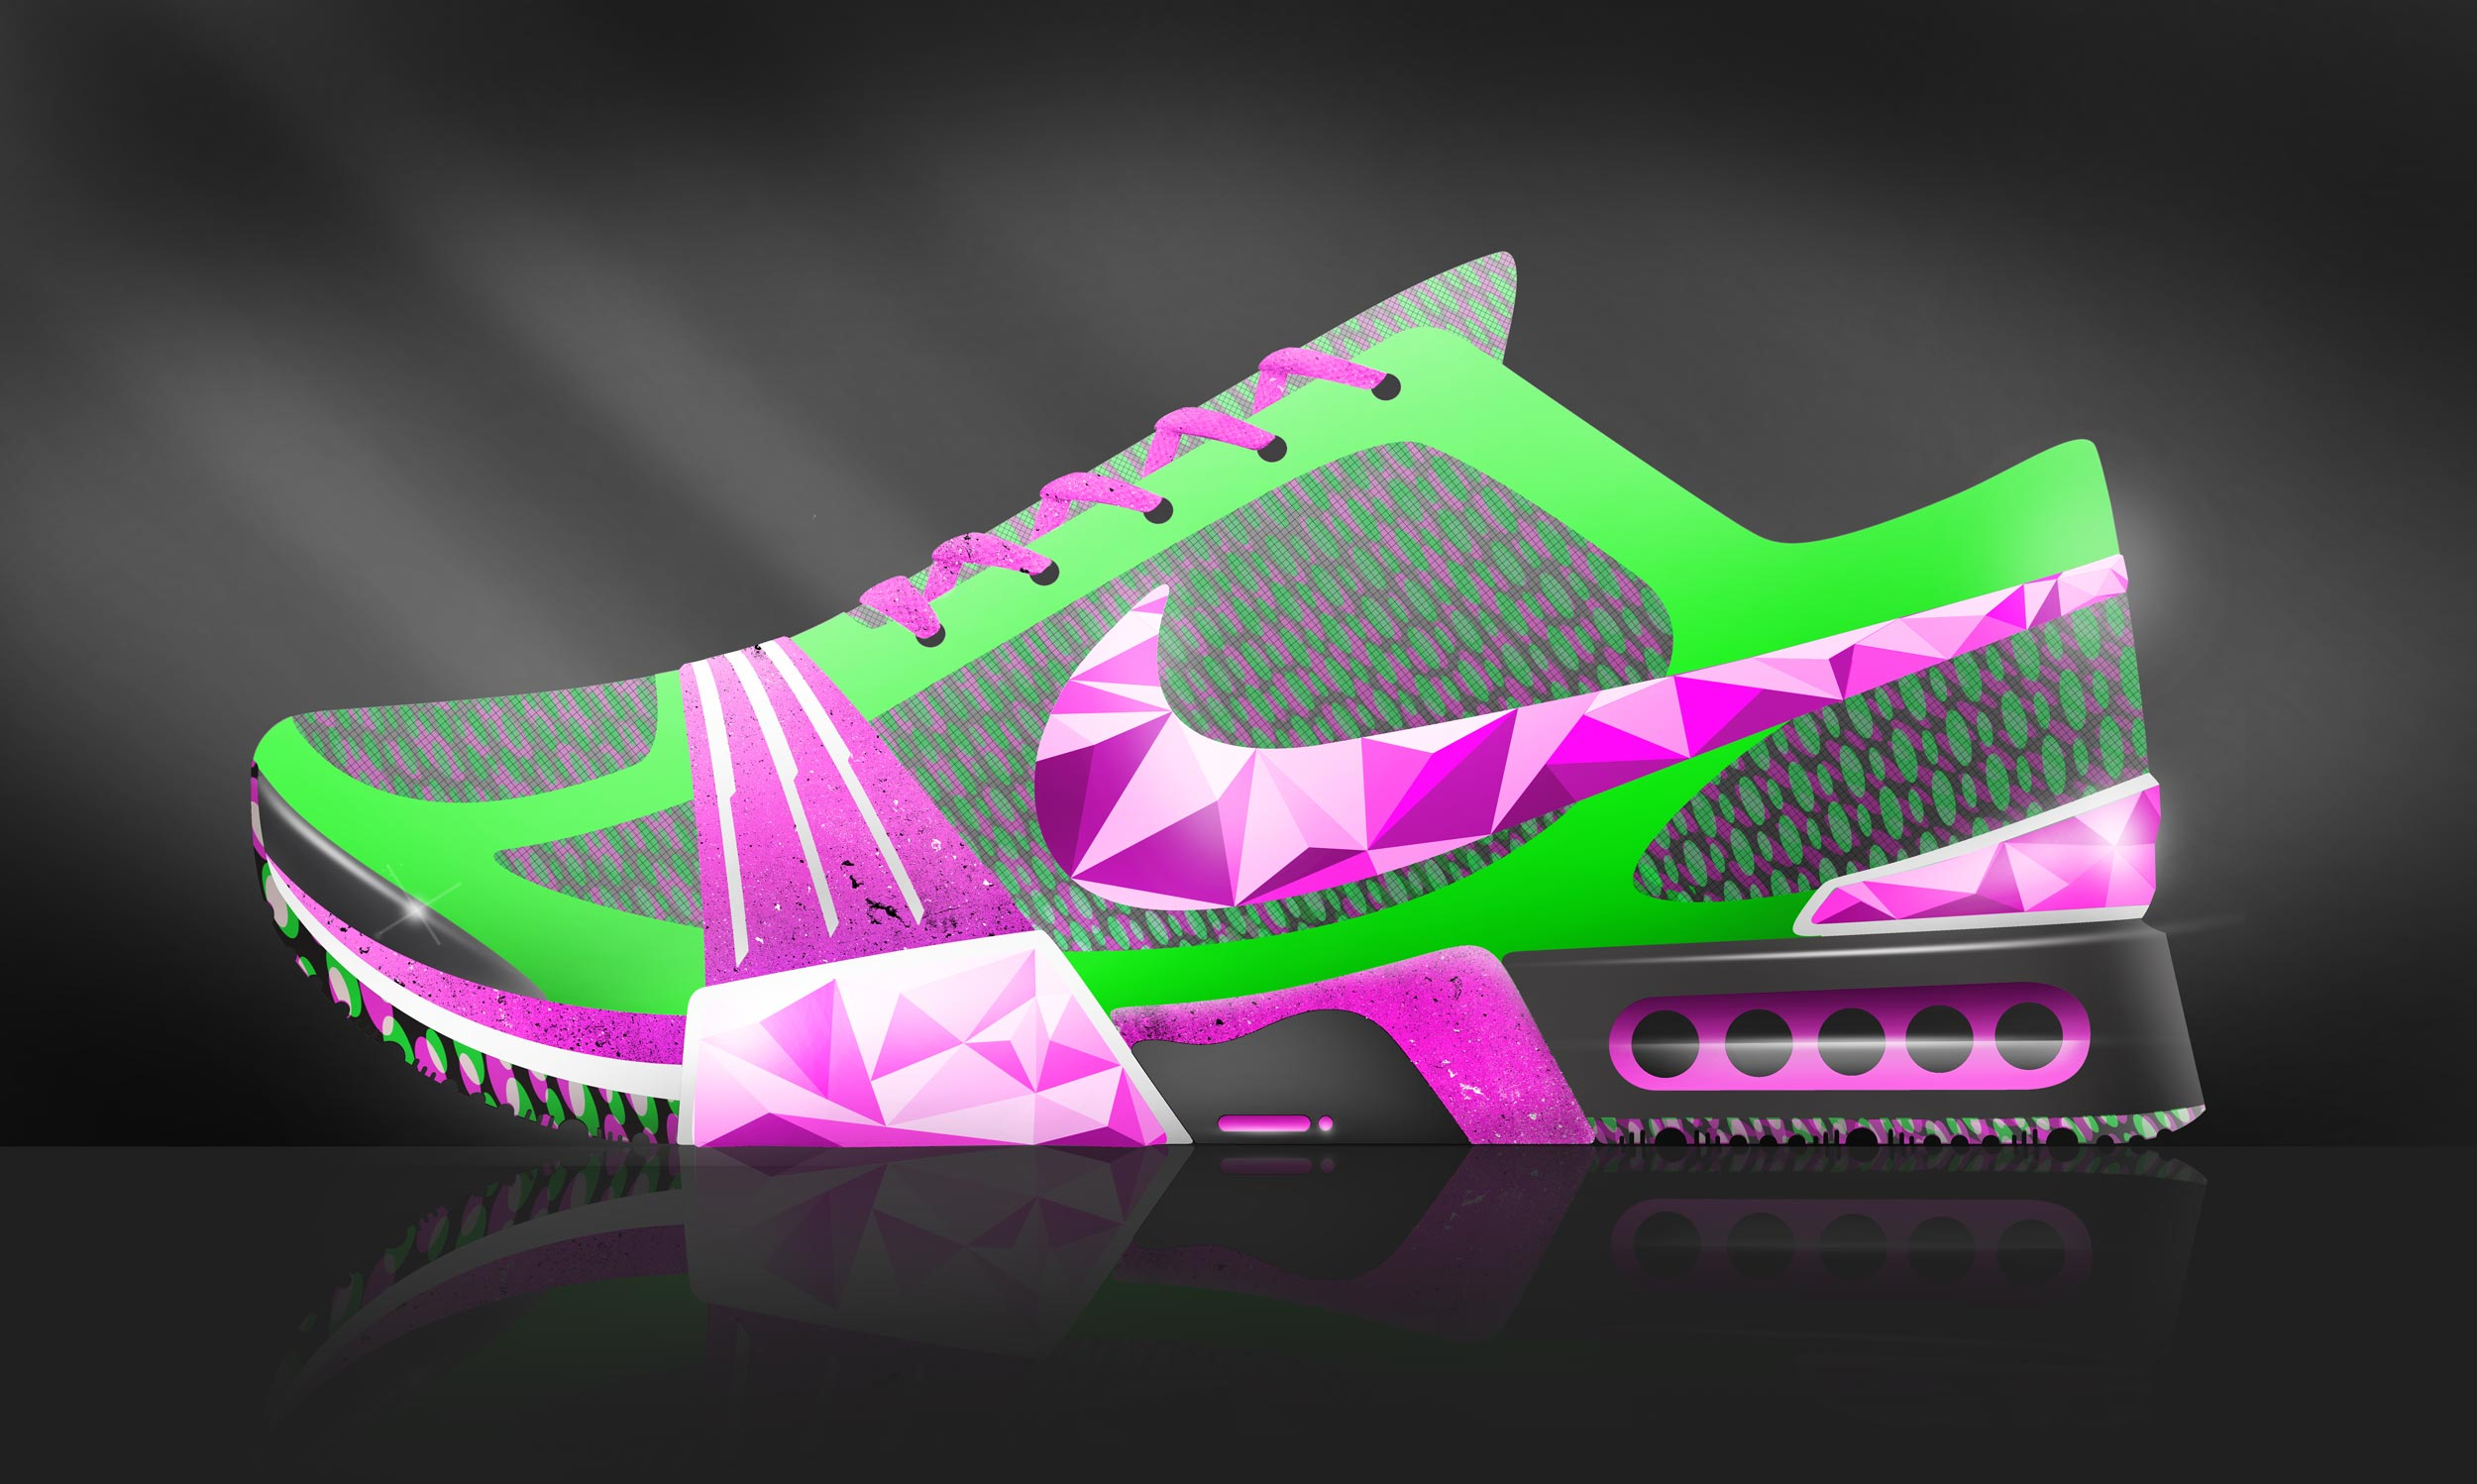 Photoshop render of a sneaker design inspired by Nike Airmax.